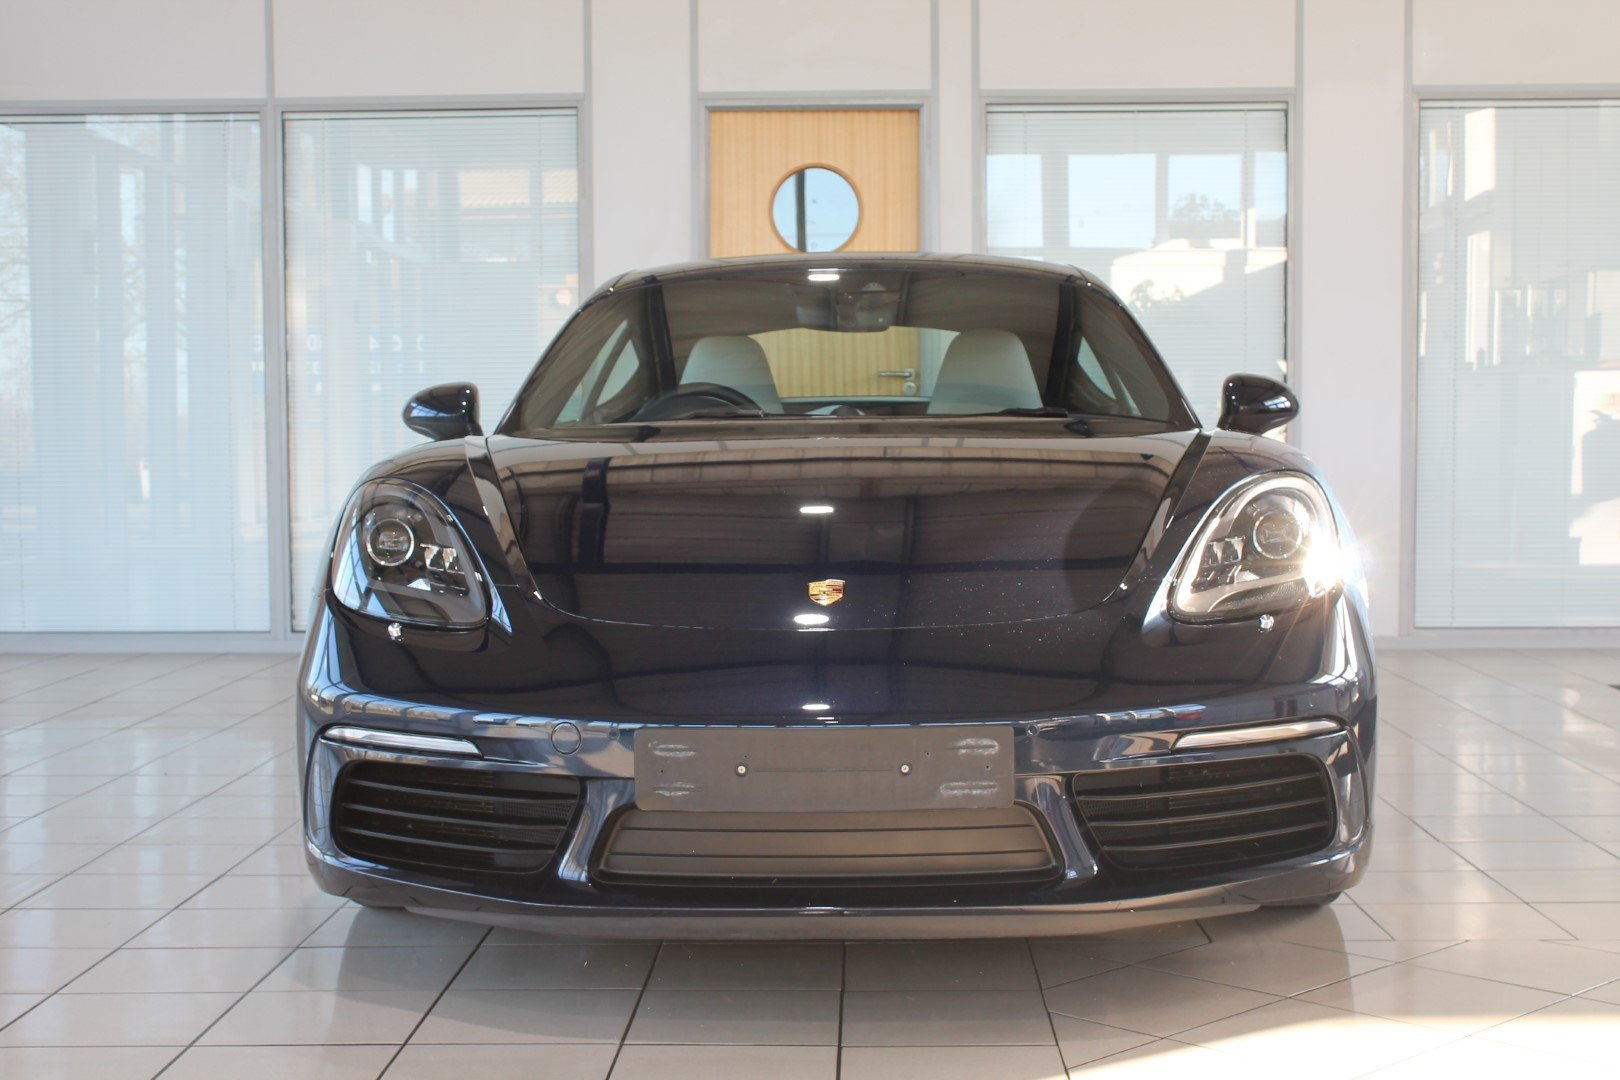 2016 Porsche Cayman (718) 2.5 S PDK - NOW SOLD - MORE REQUIRED For Sale (picture 5 of 12)